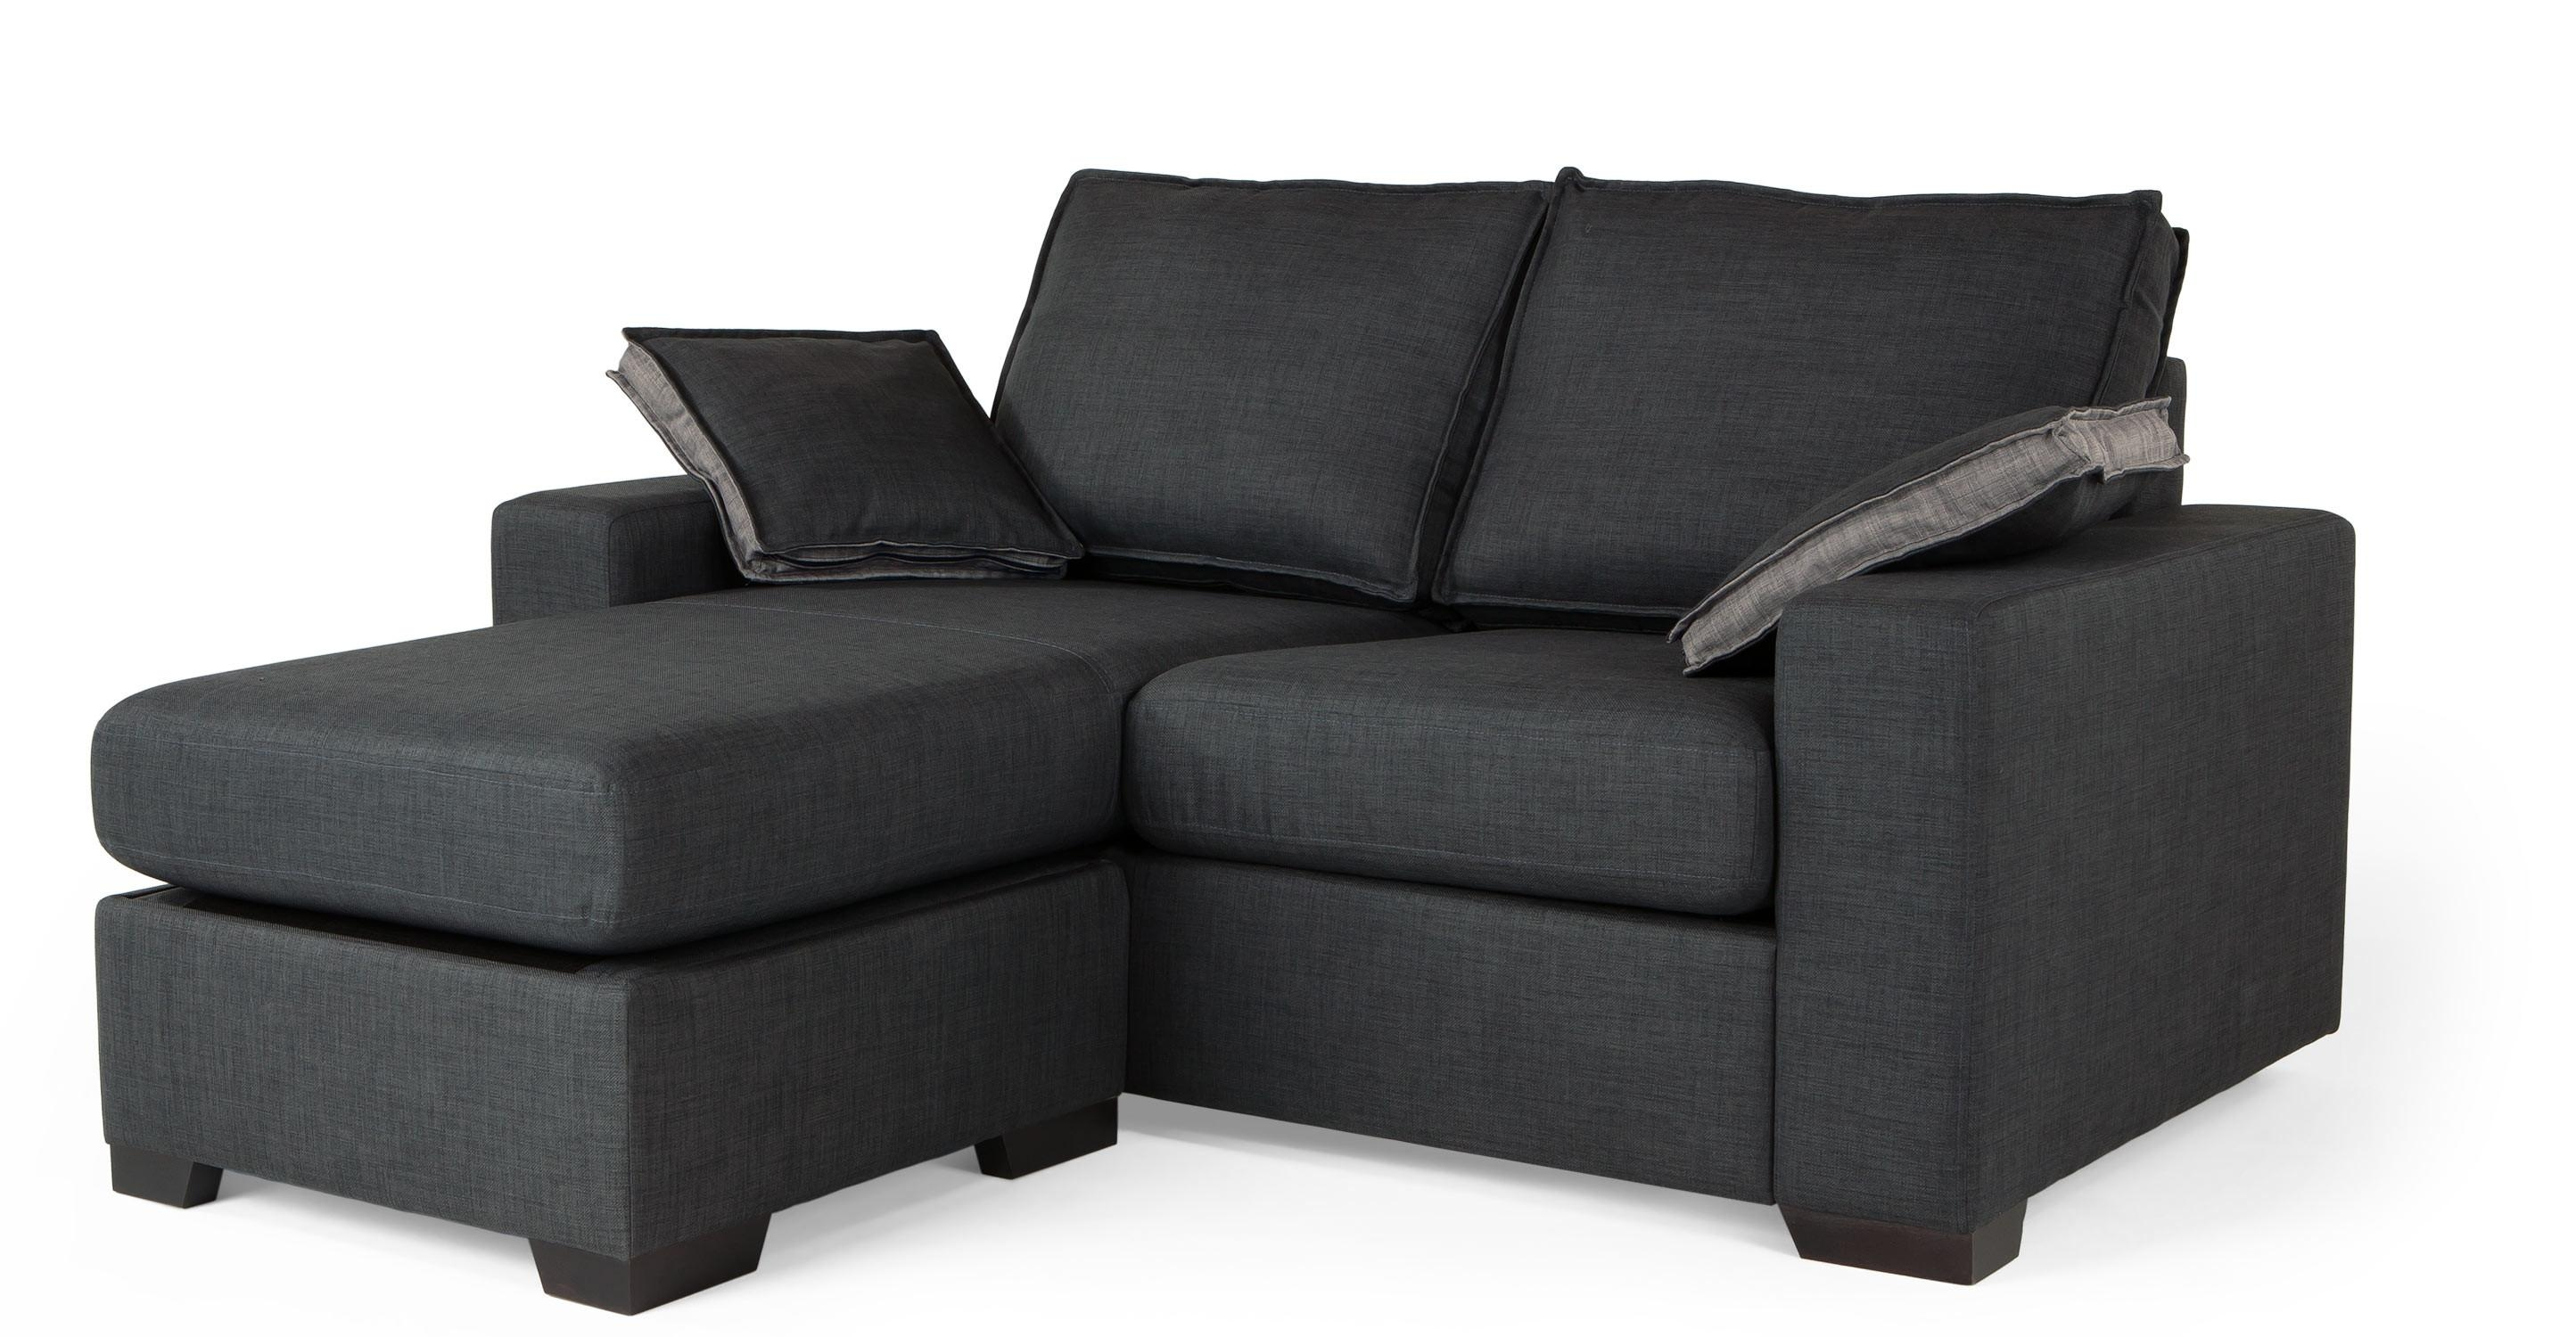 Sofas Center : Stirring Smallnal Sofa Images Ideas Charcoal Wyatt With 2 Seat Sectional Sofas (Image 14 of 15)